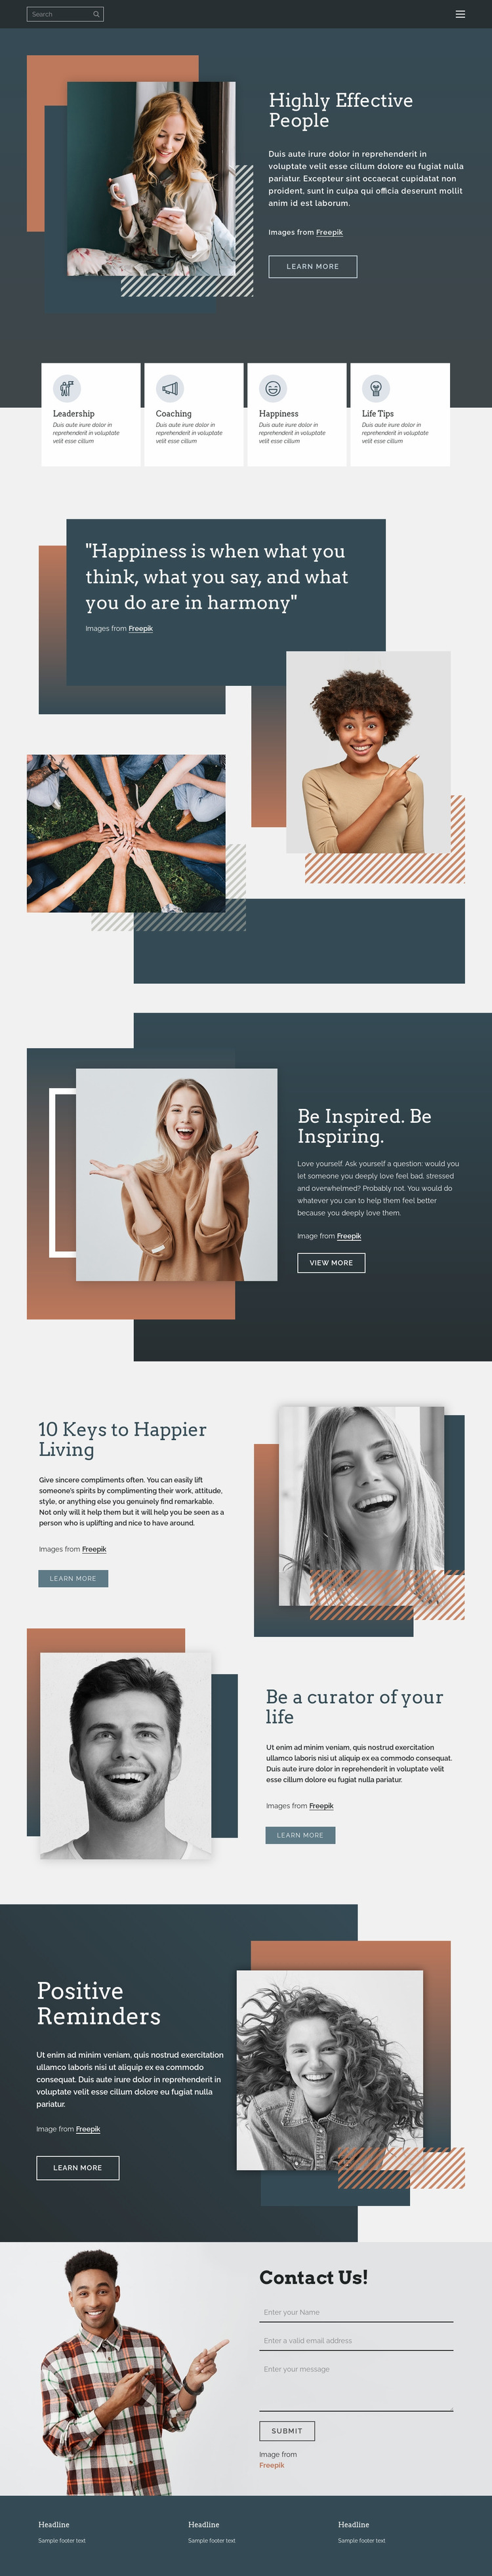 How to be successful in life Website Mockup